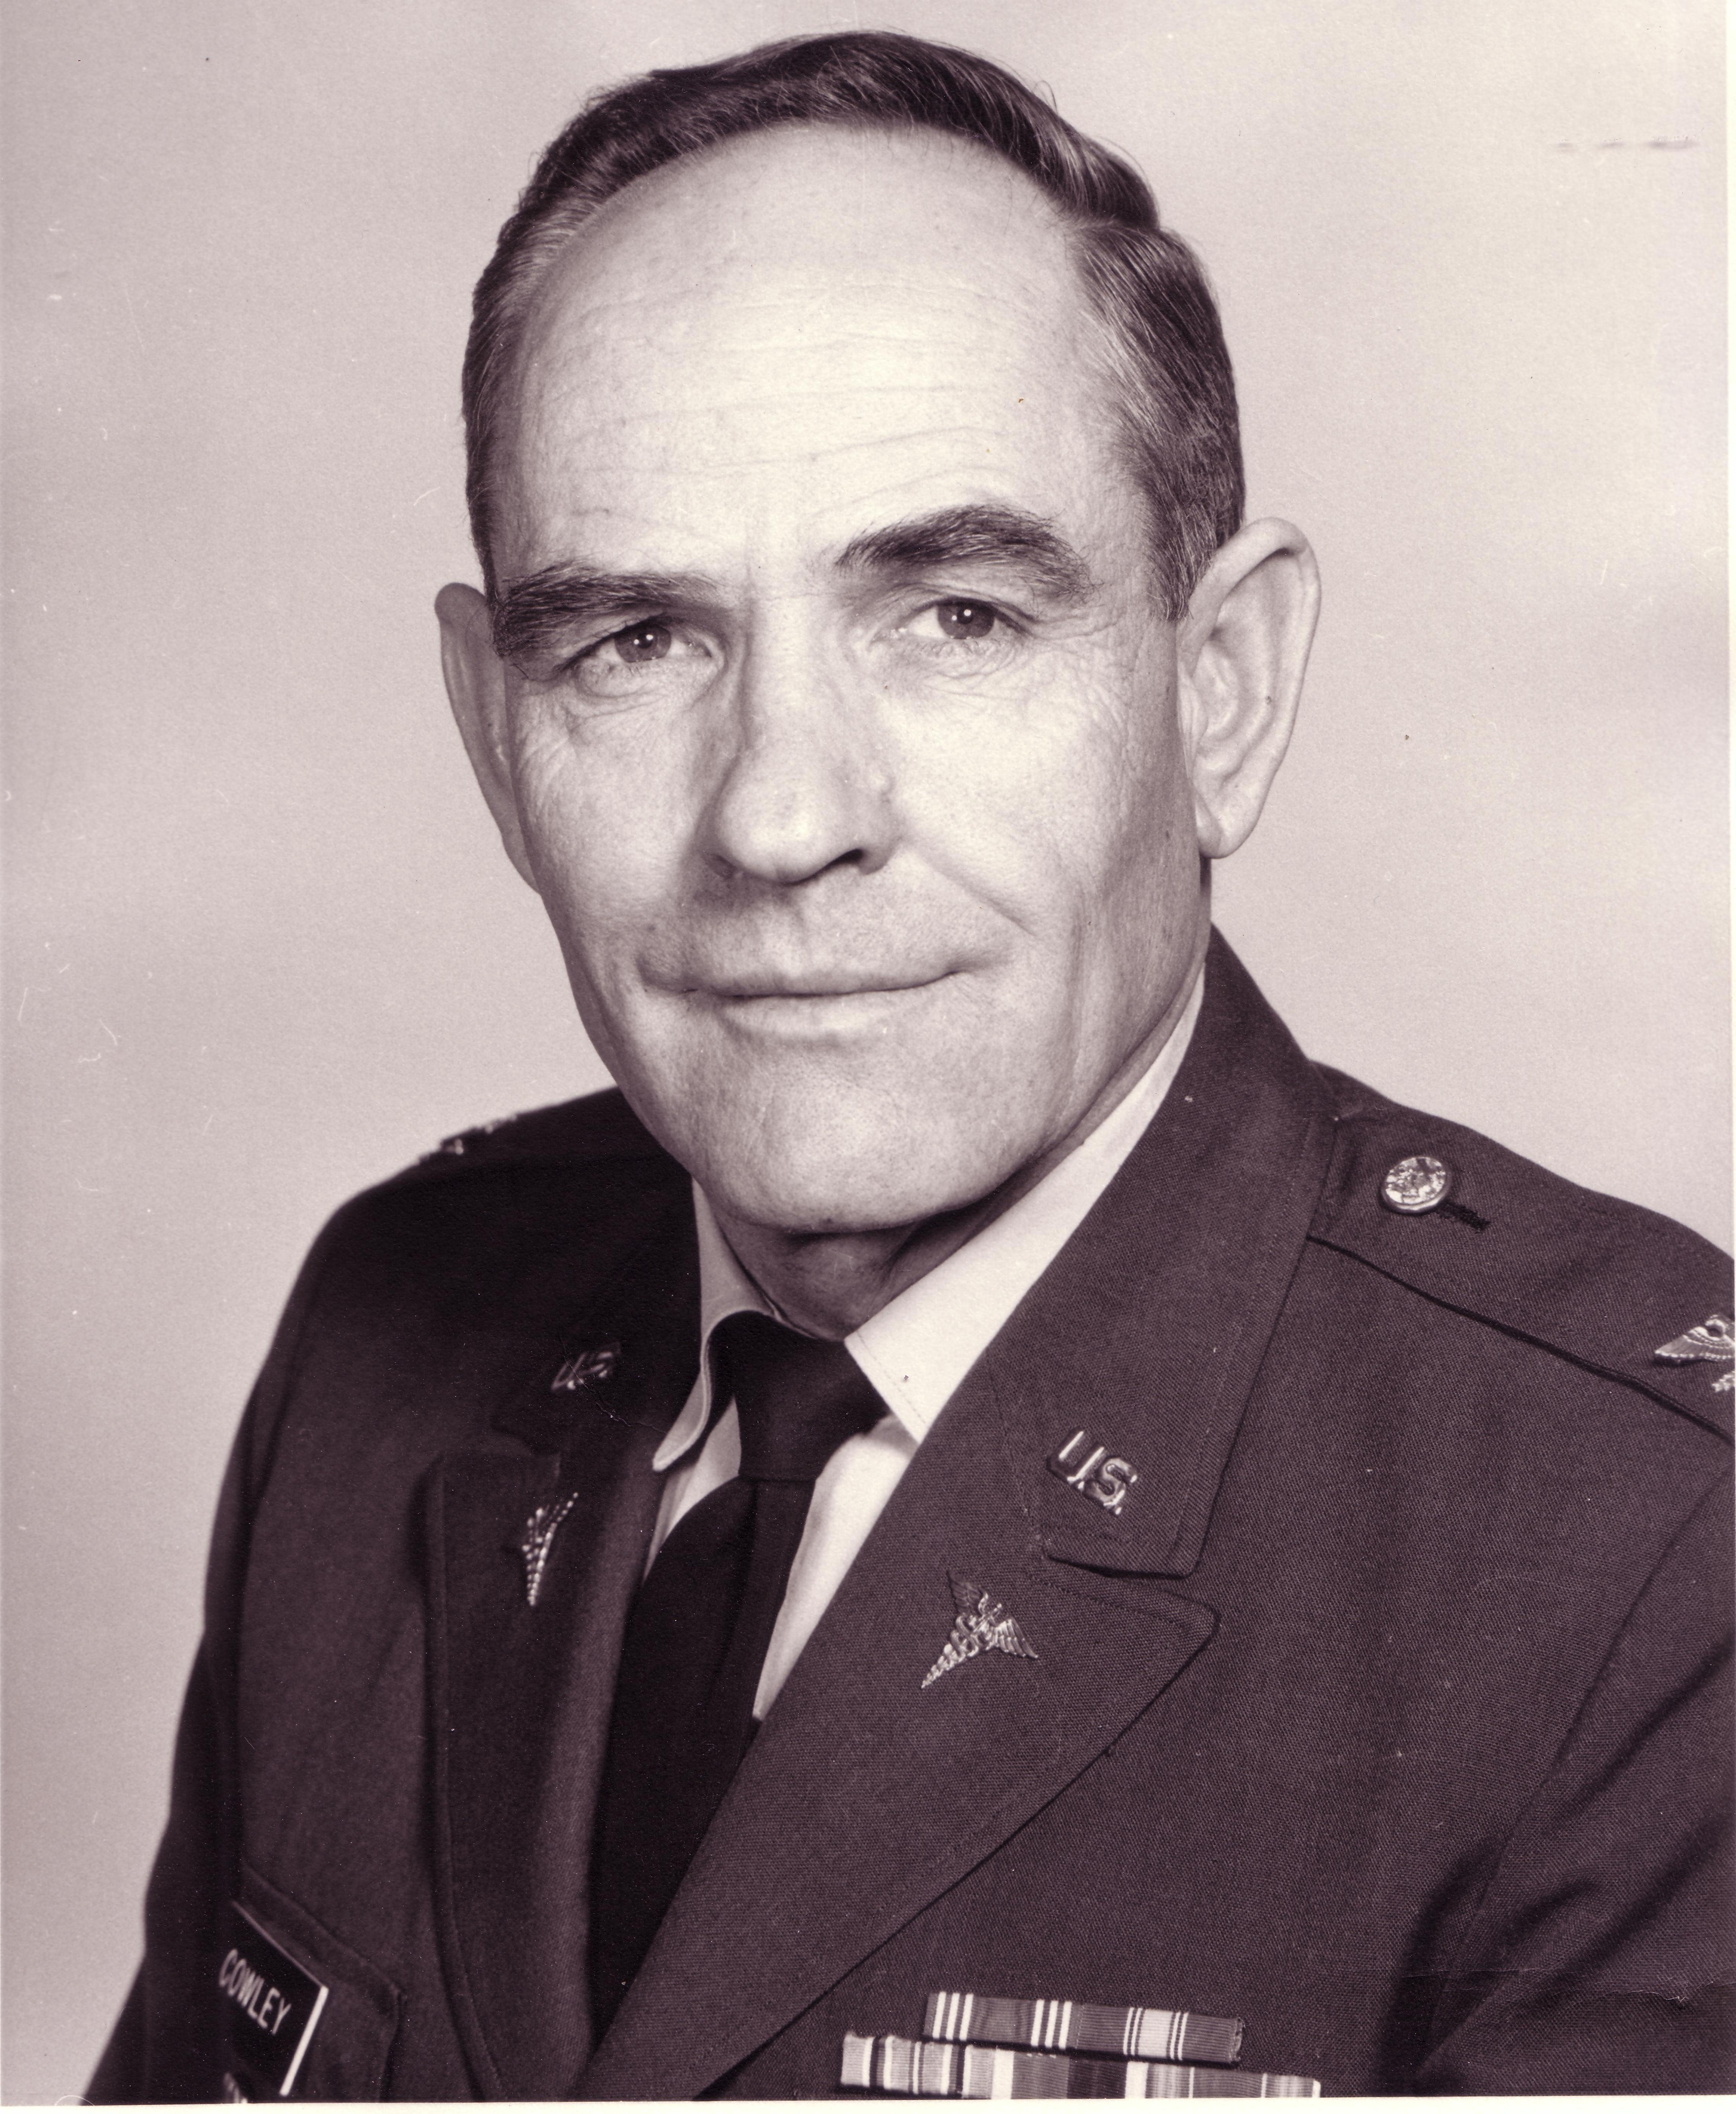 1965 Ray G. Cowley, Col. promotion